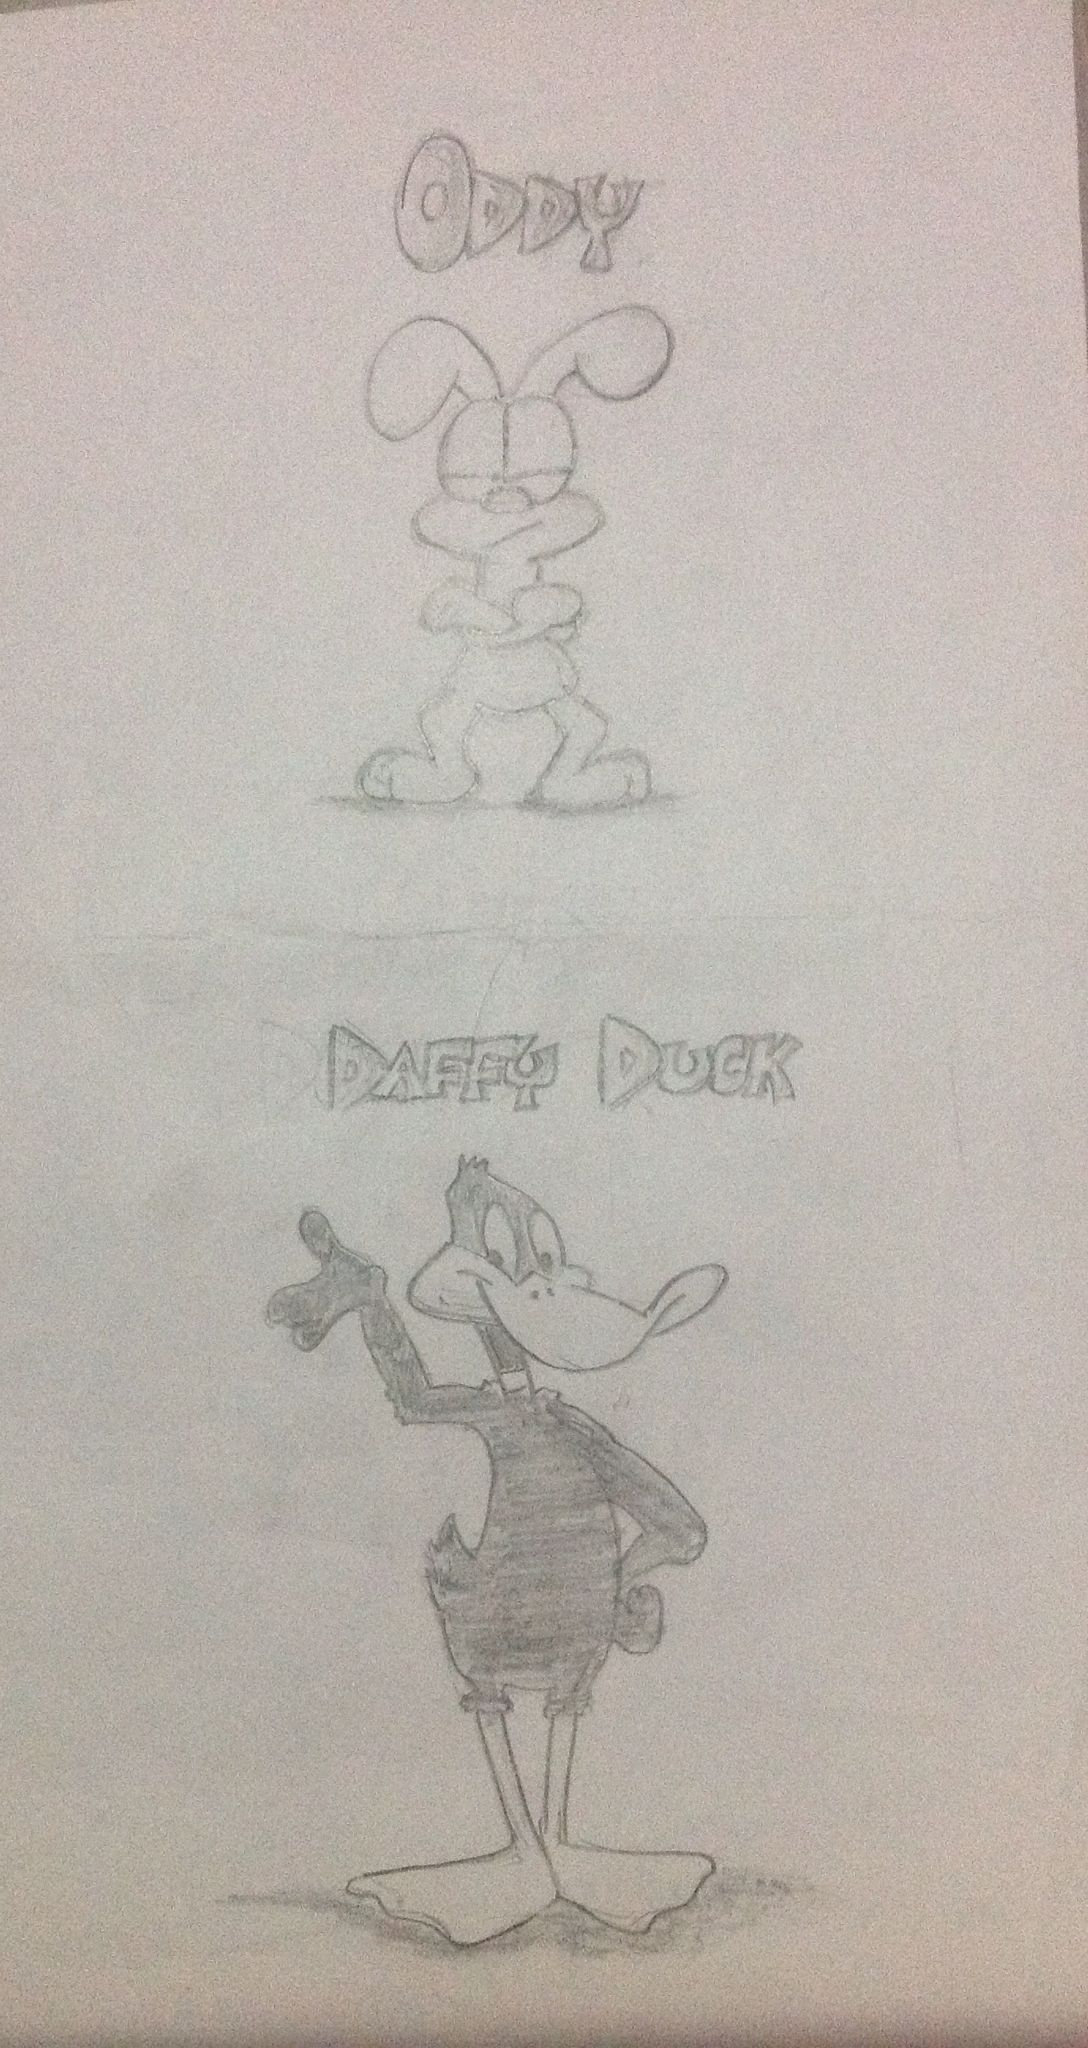 Oddy from Garfield and Daffy Duck!